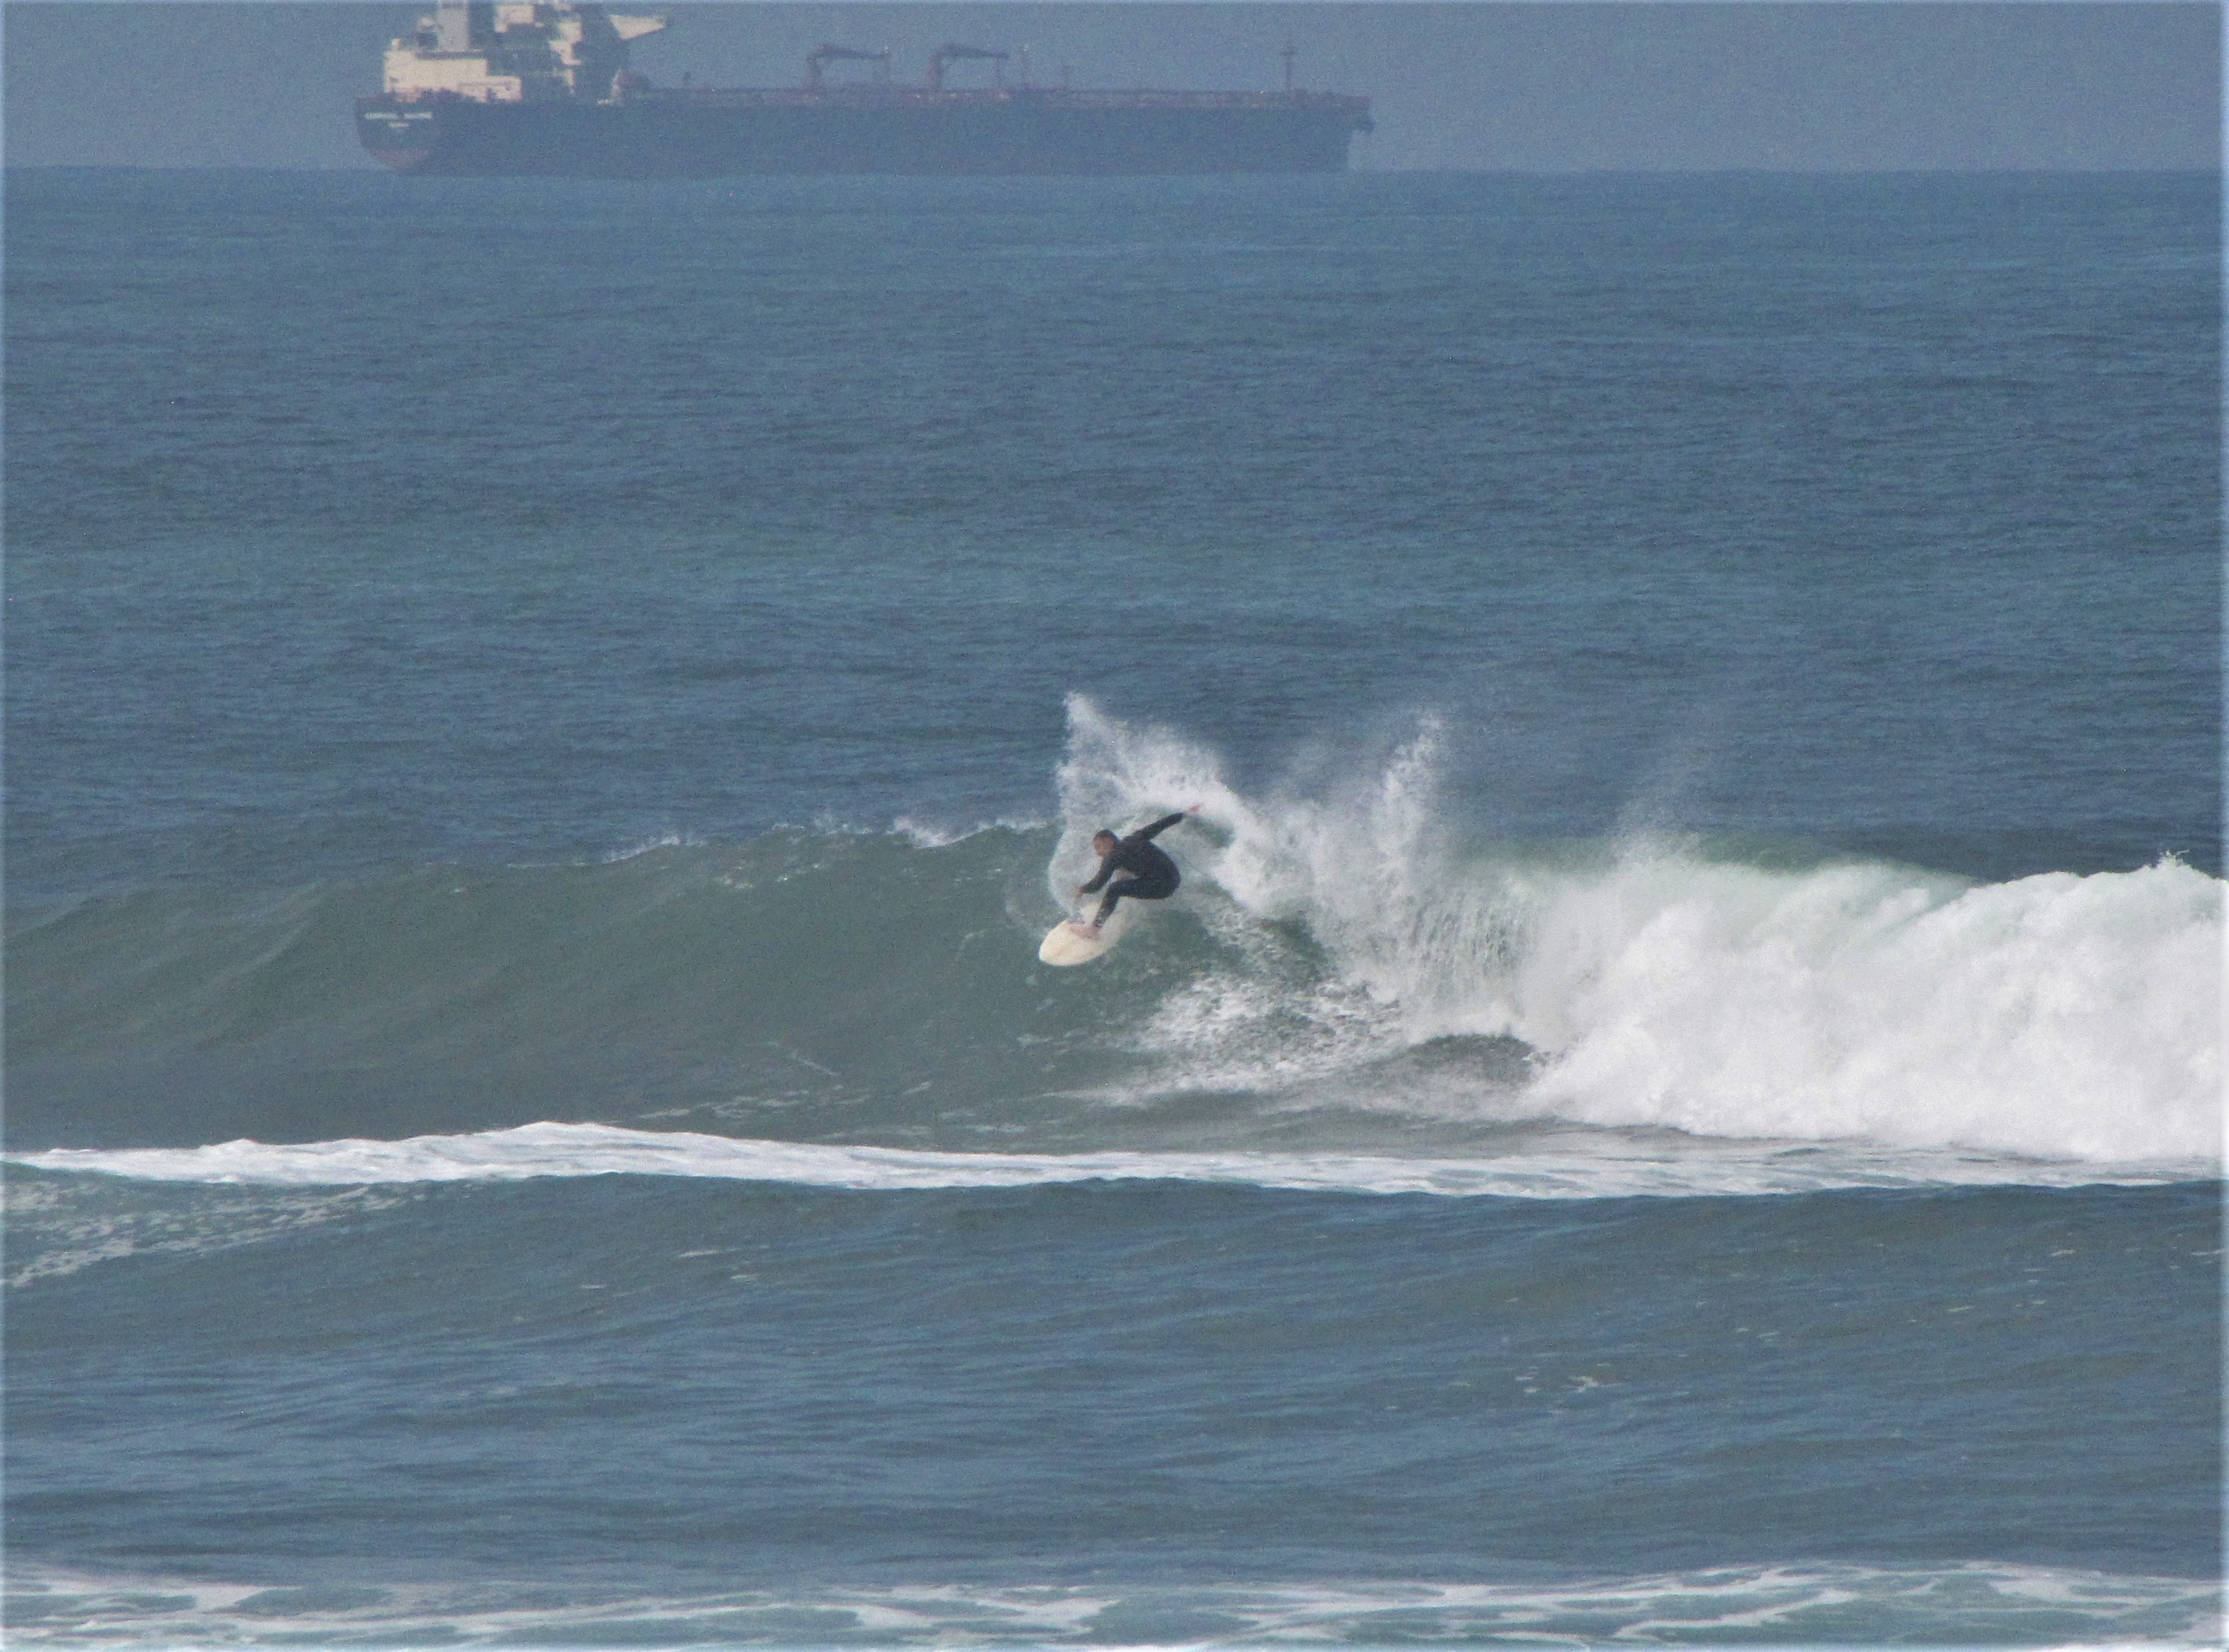 porto surfer ripping